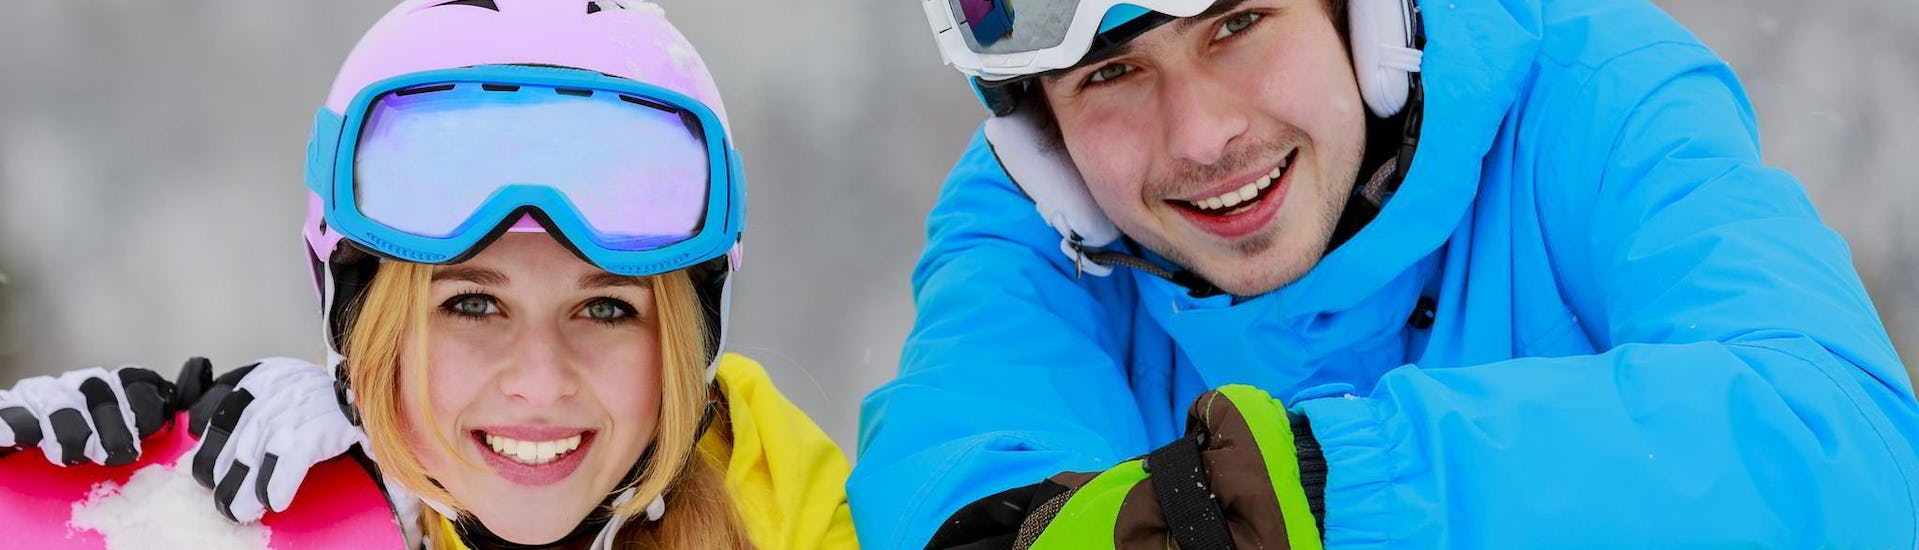 Private Snowboard Lessons - All Levels & Ages